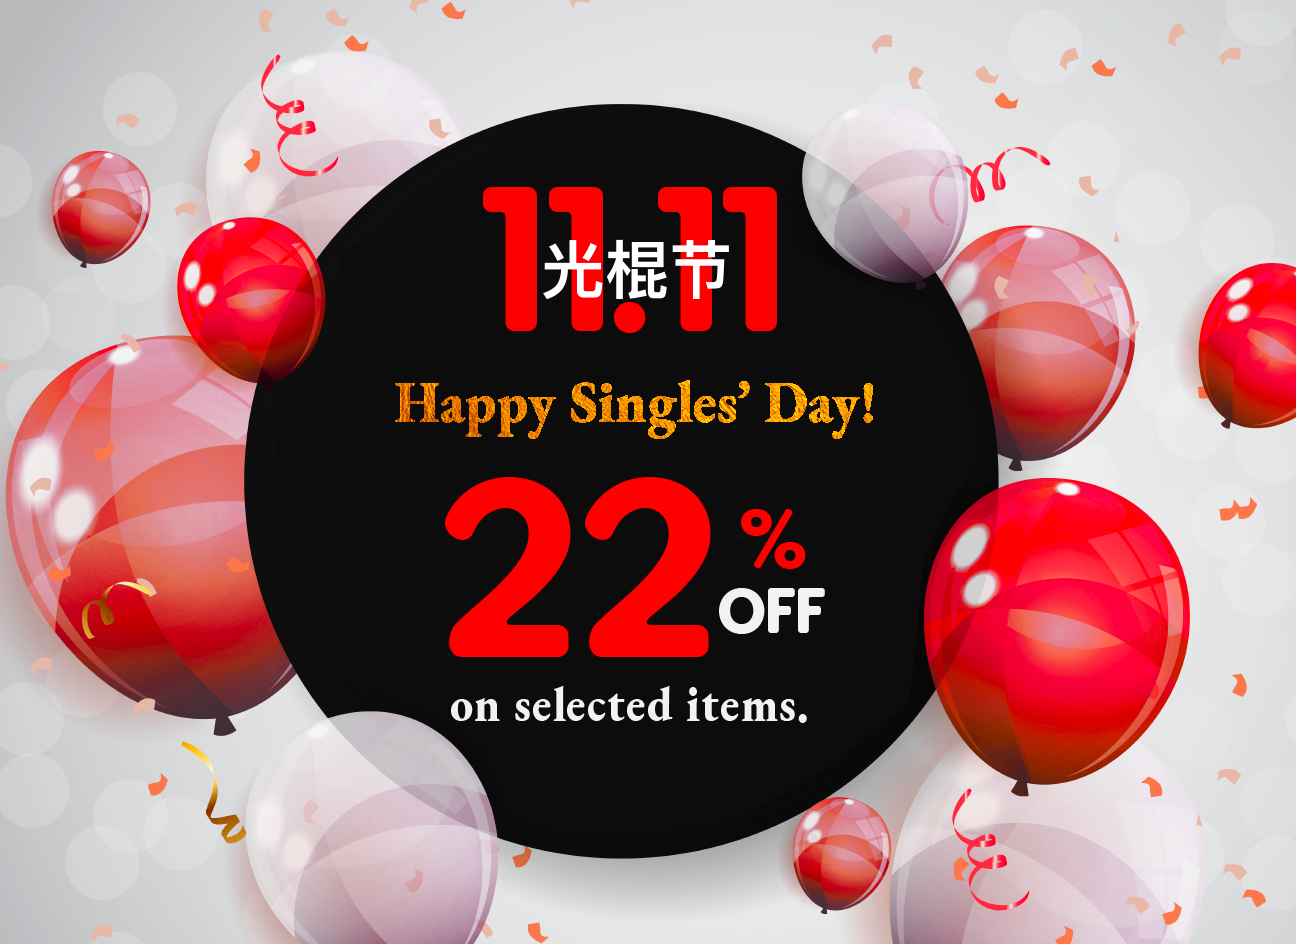 Happy Singles Day! 10% off on selected products.